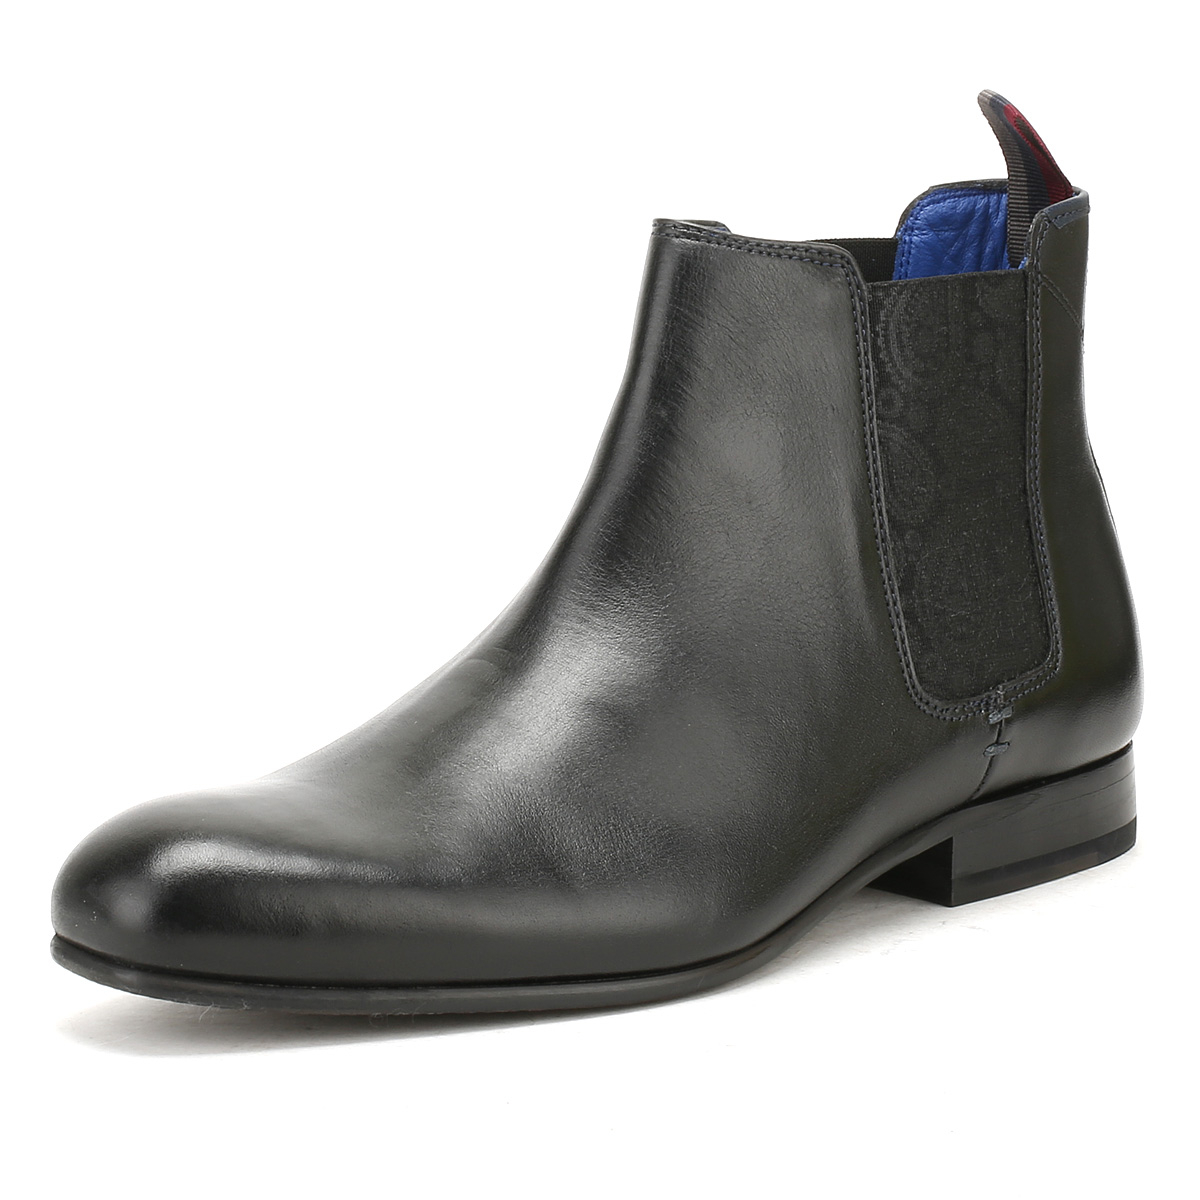 c72a97f51 Details about Ted Baker Mens Black Leather Kayto Chelsea Boots Leather  Winter Ankle Shoes